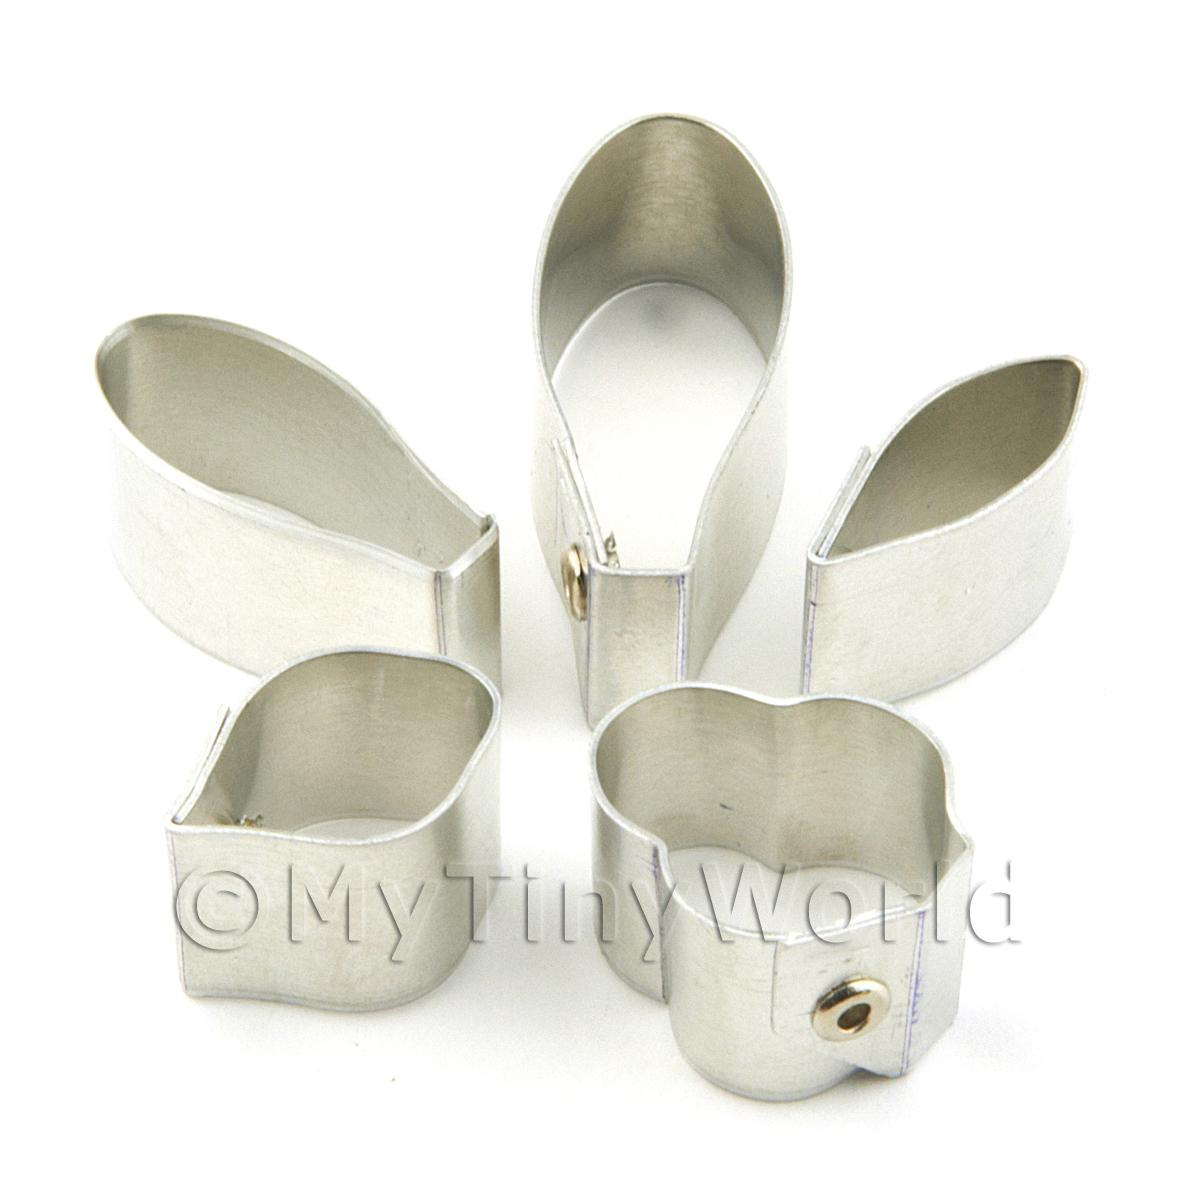 Set of 5 Assorted Size Metal Cattleya Craft Cutters